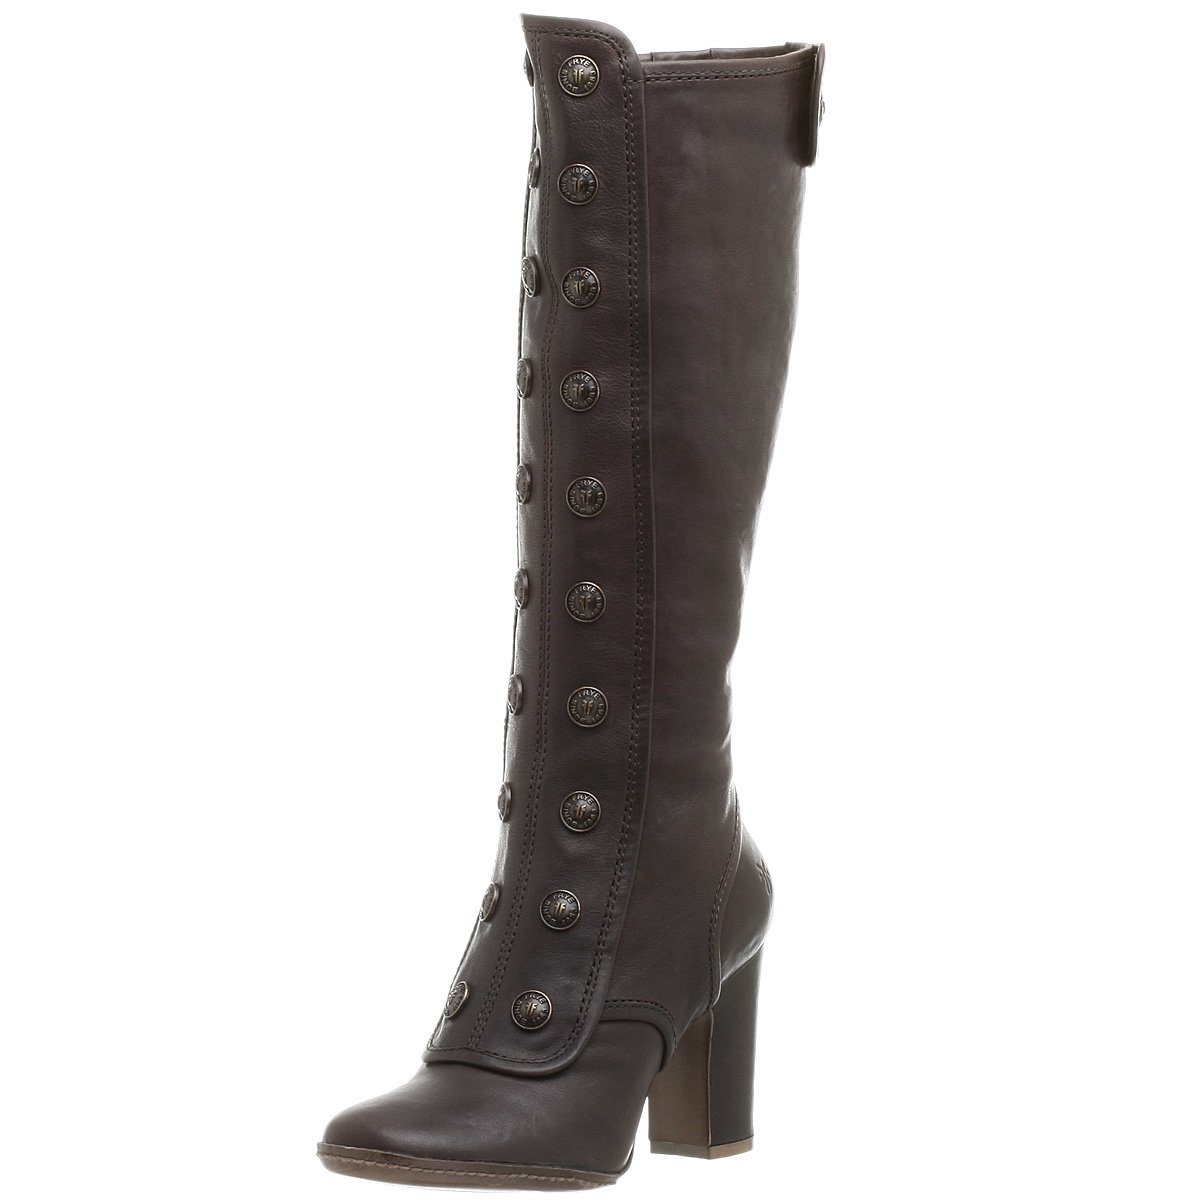 FRYE Adrienne Button Tall Boot - Free Overnight Shipping & Return Shipping: Endless.com from endless.com